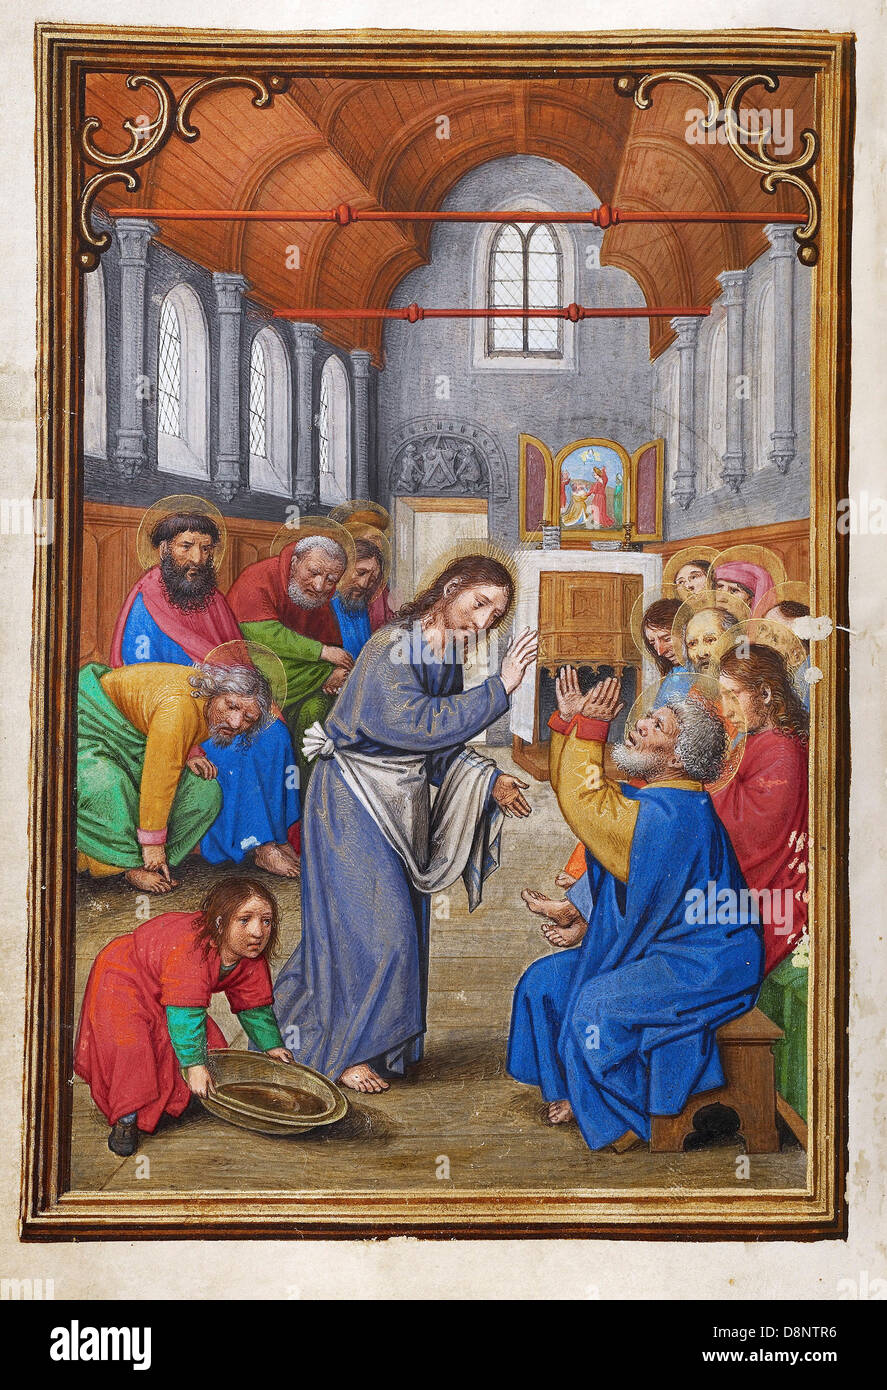 Simon Bening, Christ Washing the Apostles' Feet 1525-1530 Oil on canvas. Tempera colors, gold paint, and gold - Stock Image